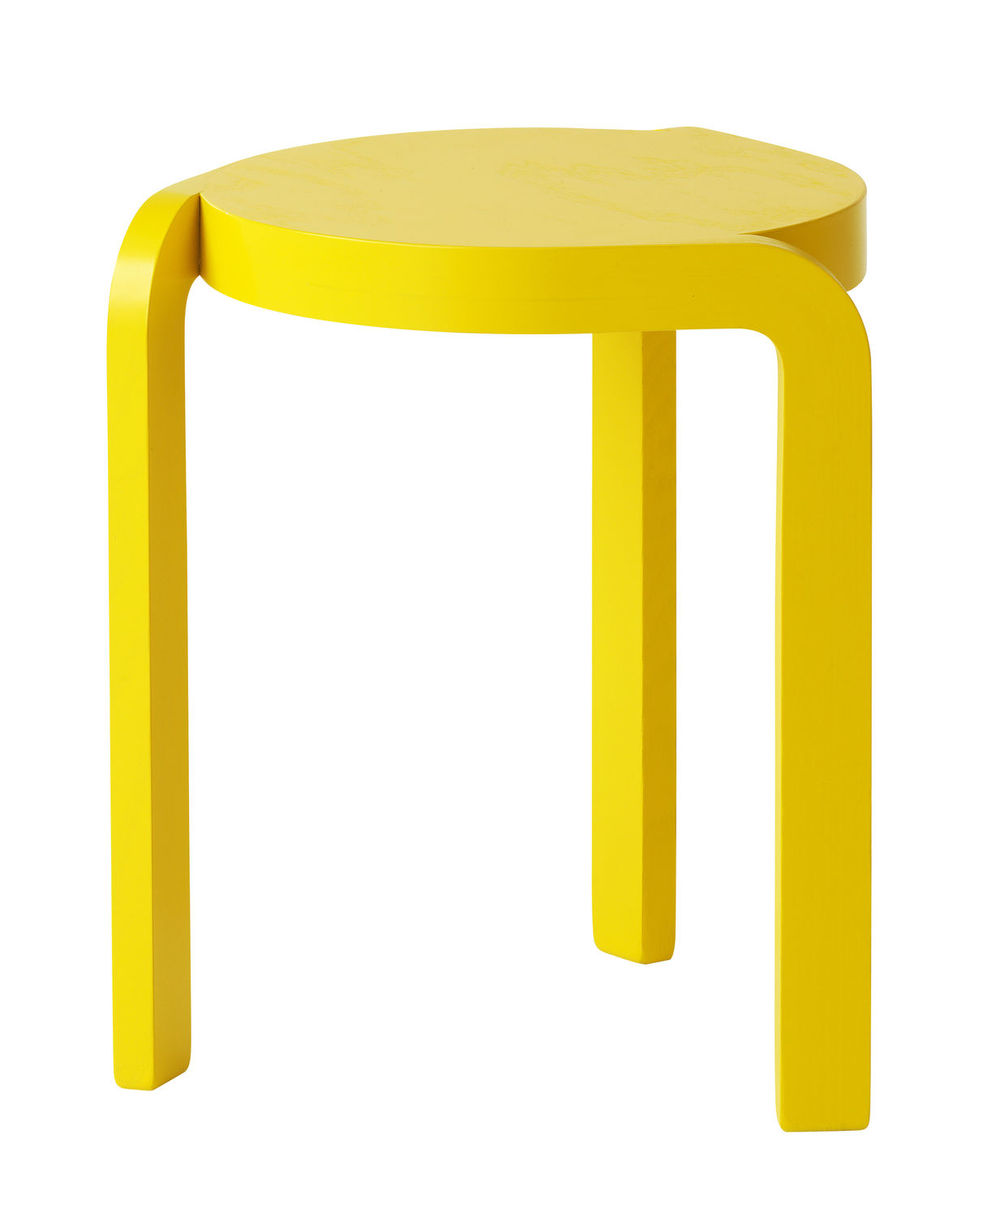 contemporary-stool-stackable-52515-5190585.jpg